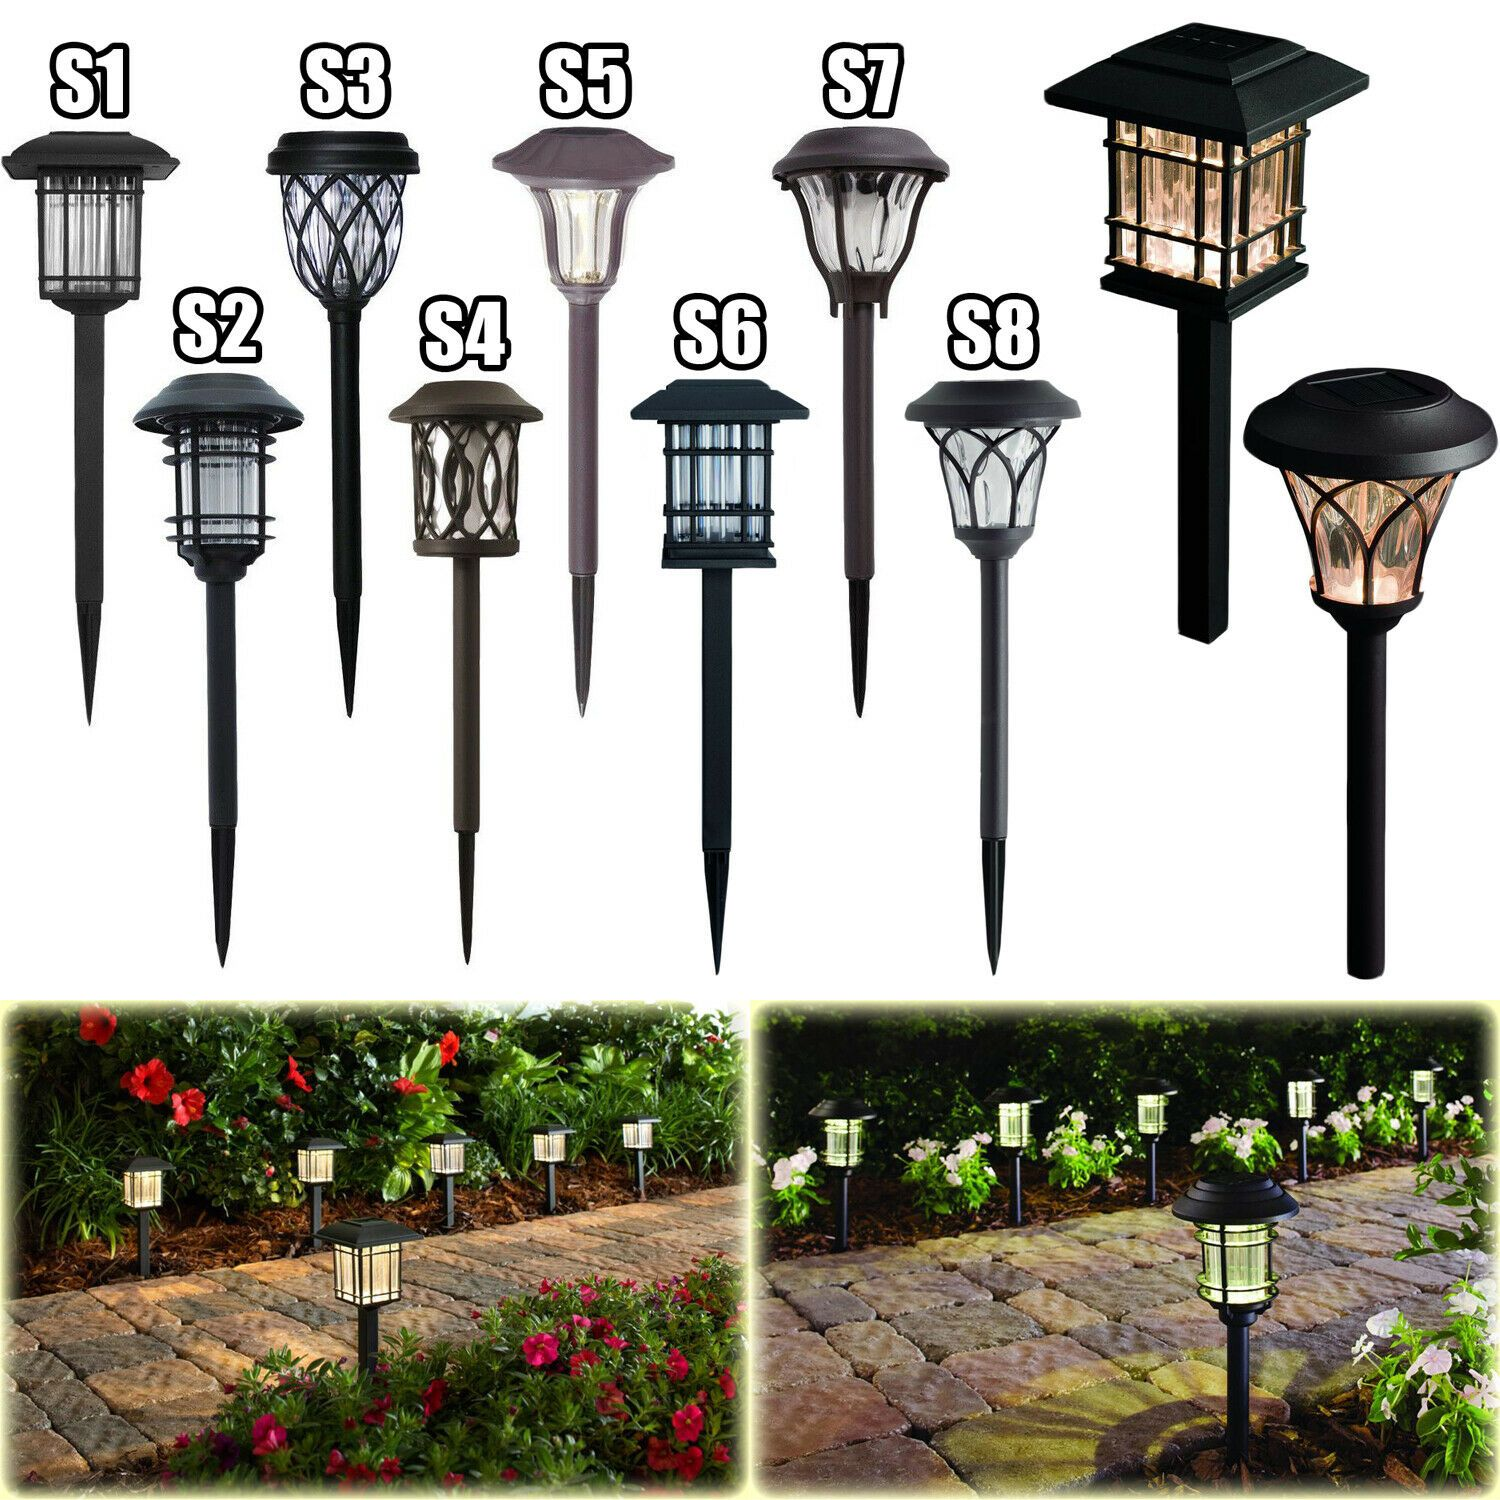 Details About Outdoor Solar Led Pathway Lights Walkway Garden Landscape Path Lighting 6 Pack Solar Pathway Lights Outdoor Solar Lights Bronze Lighting